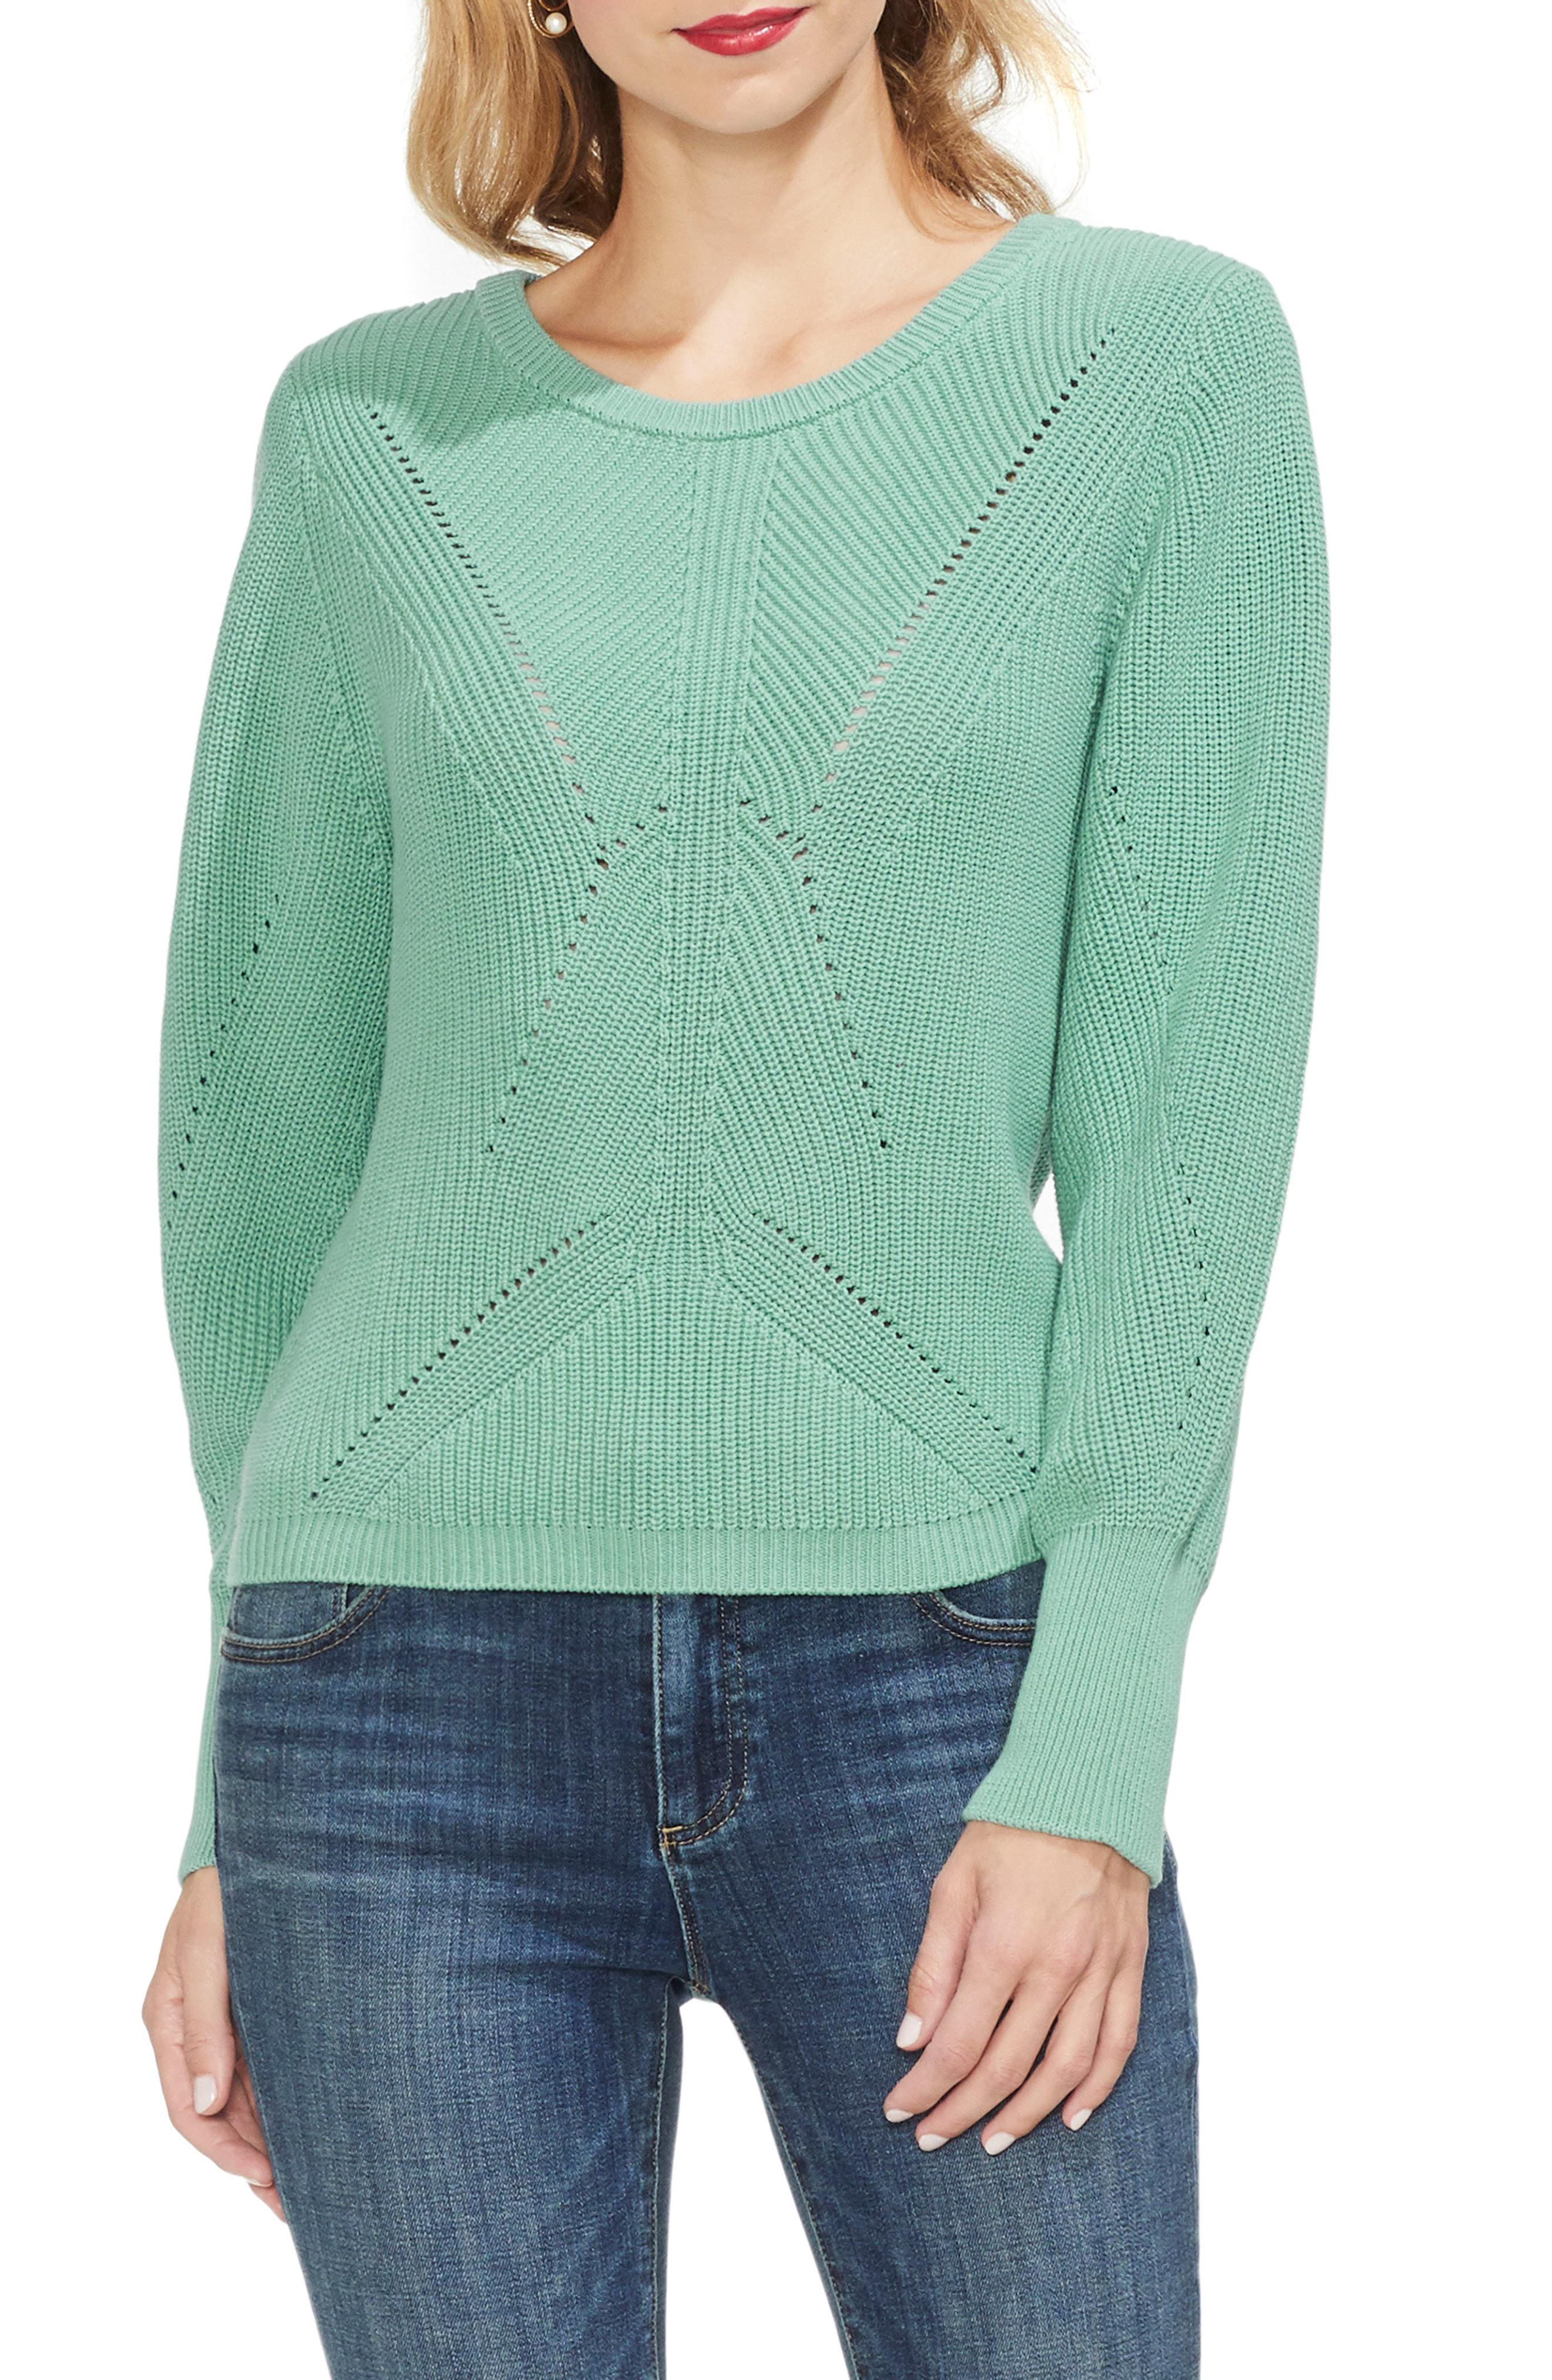 ea460393330337 Lyst - Vince Camuto Lace-up Back Sweater in Green